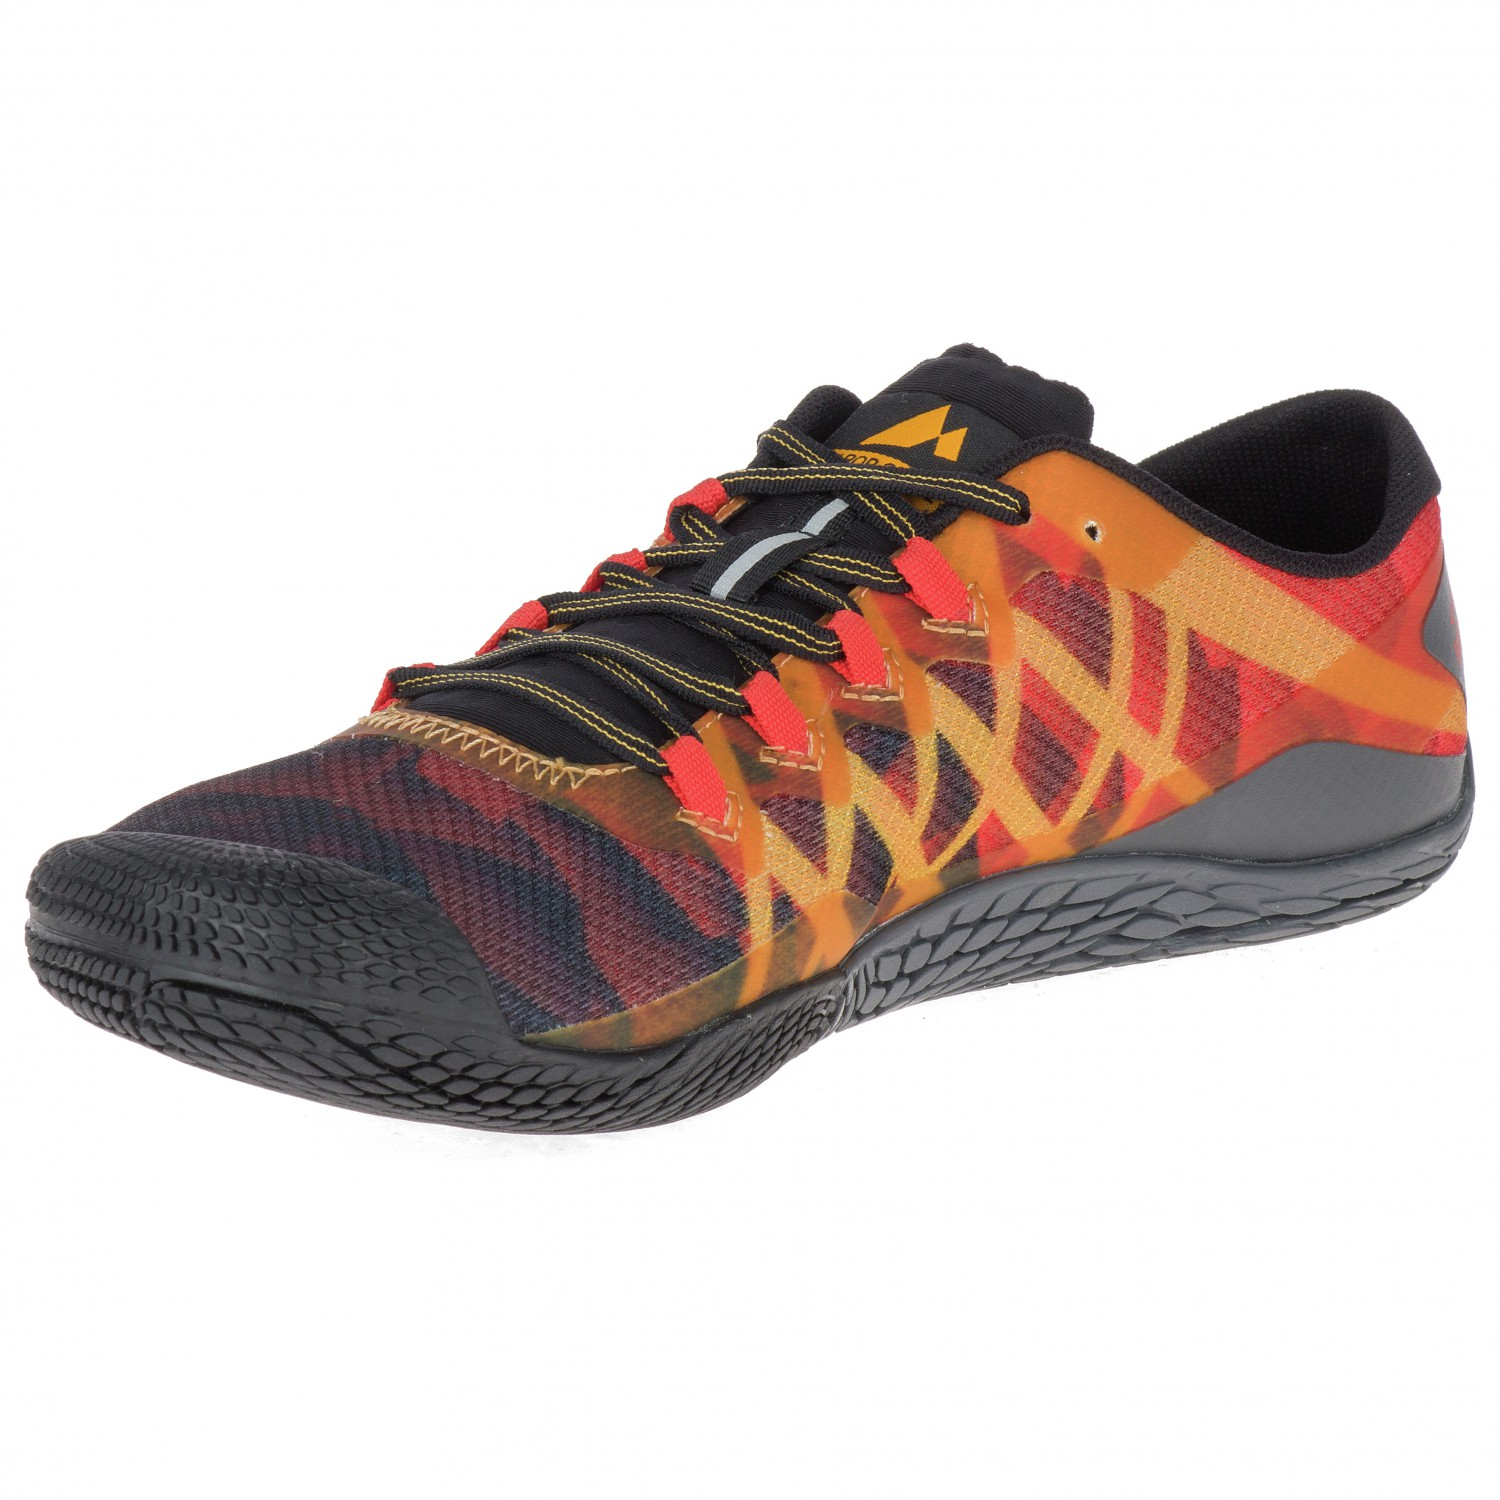 2498a3b095 Merrell Vapor Glove 3 - Trail Running Shoes Men's | Free UK Delivery ...